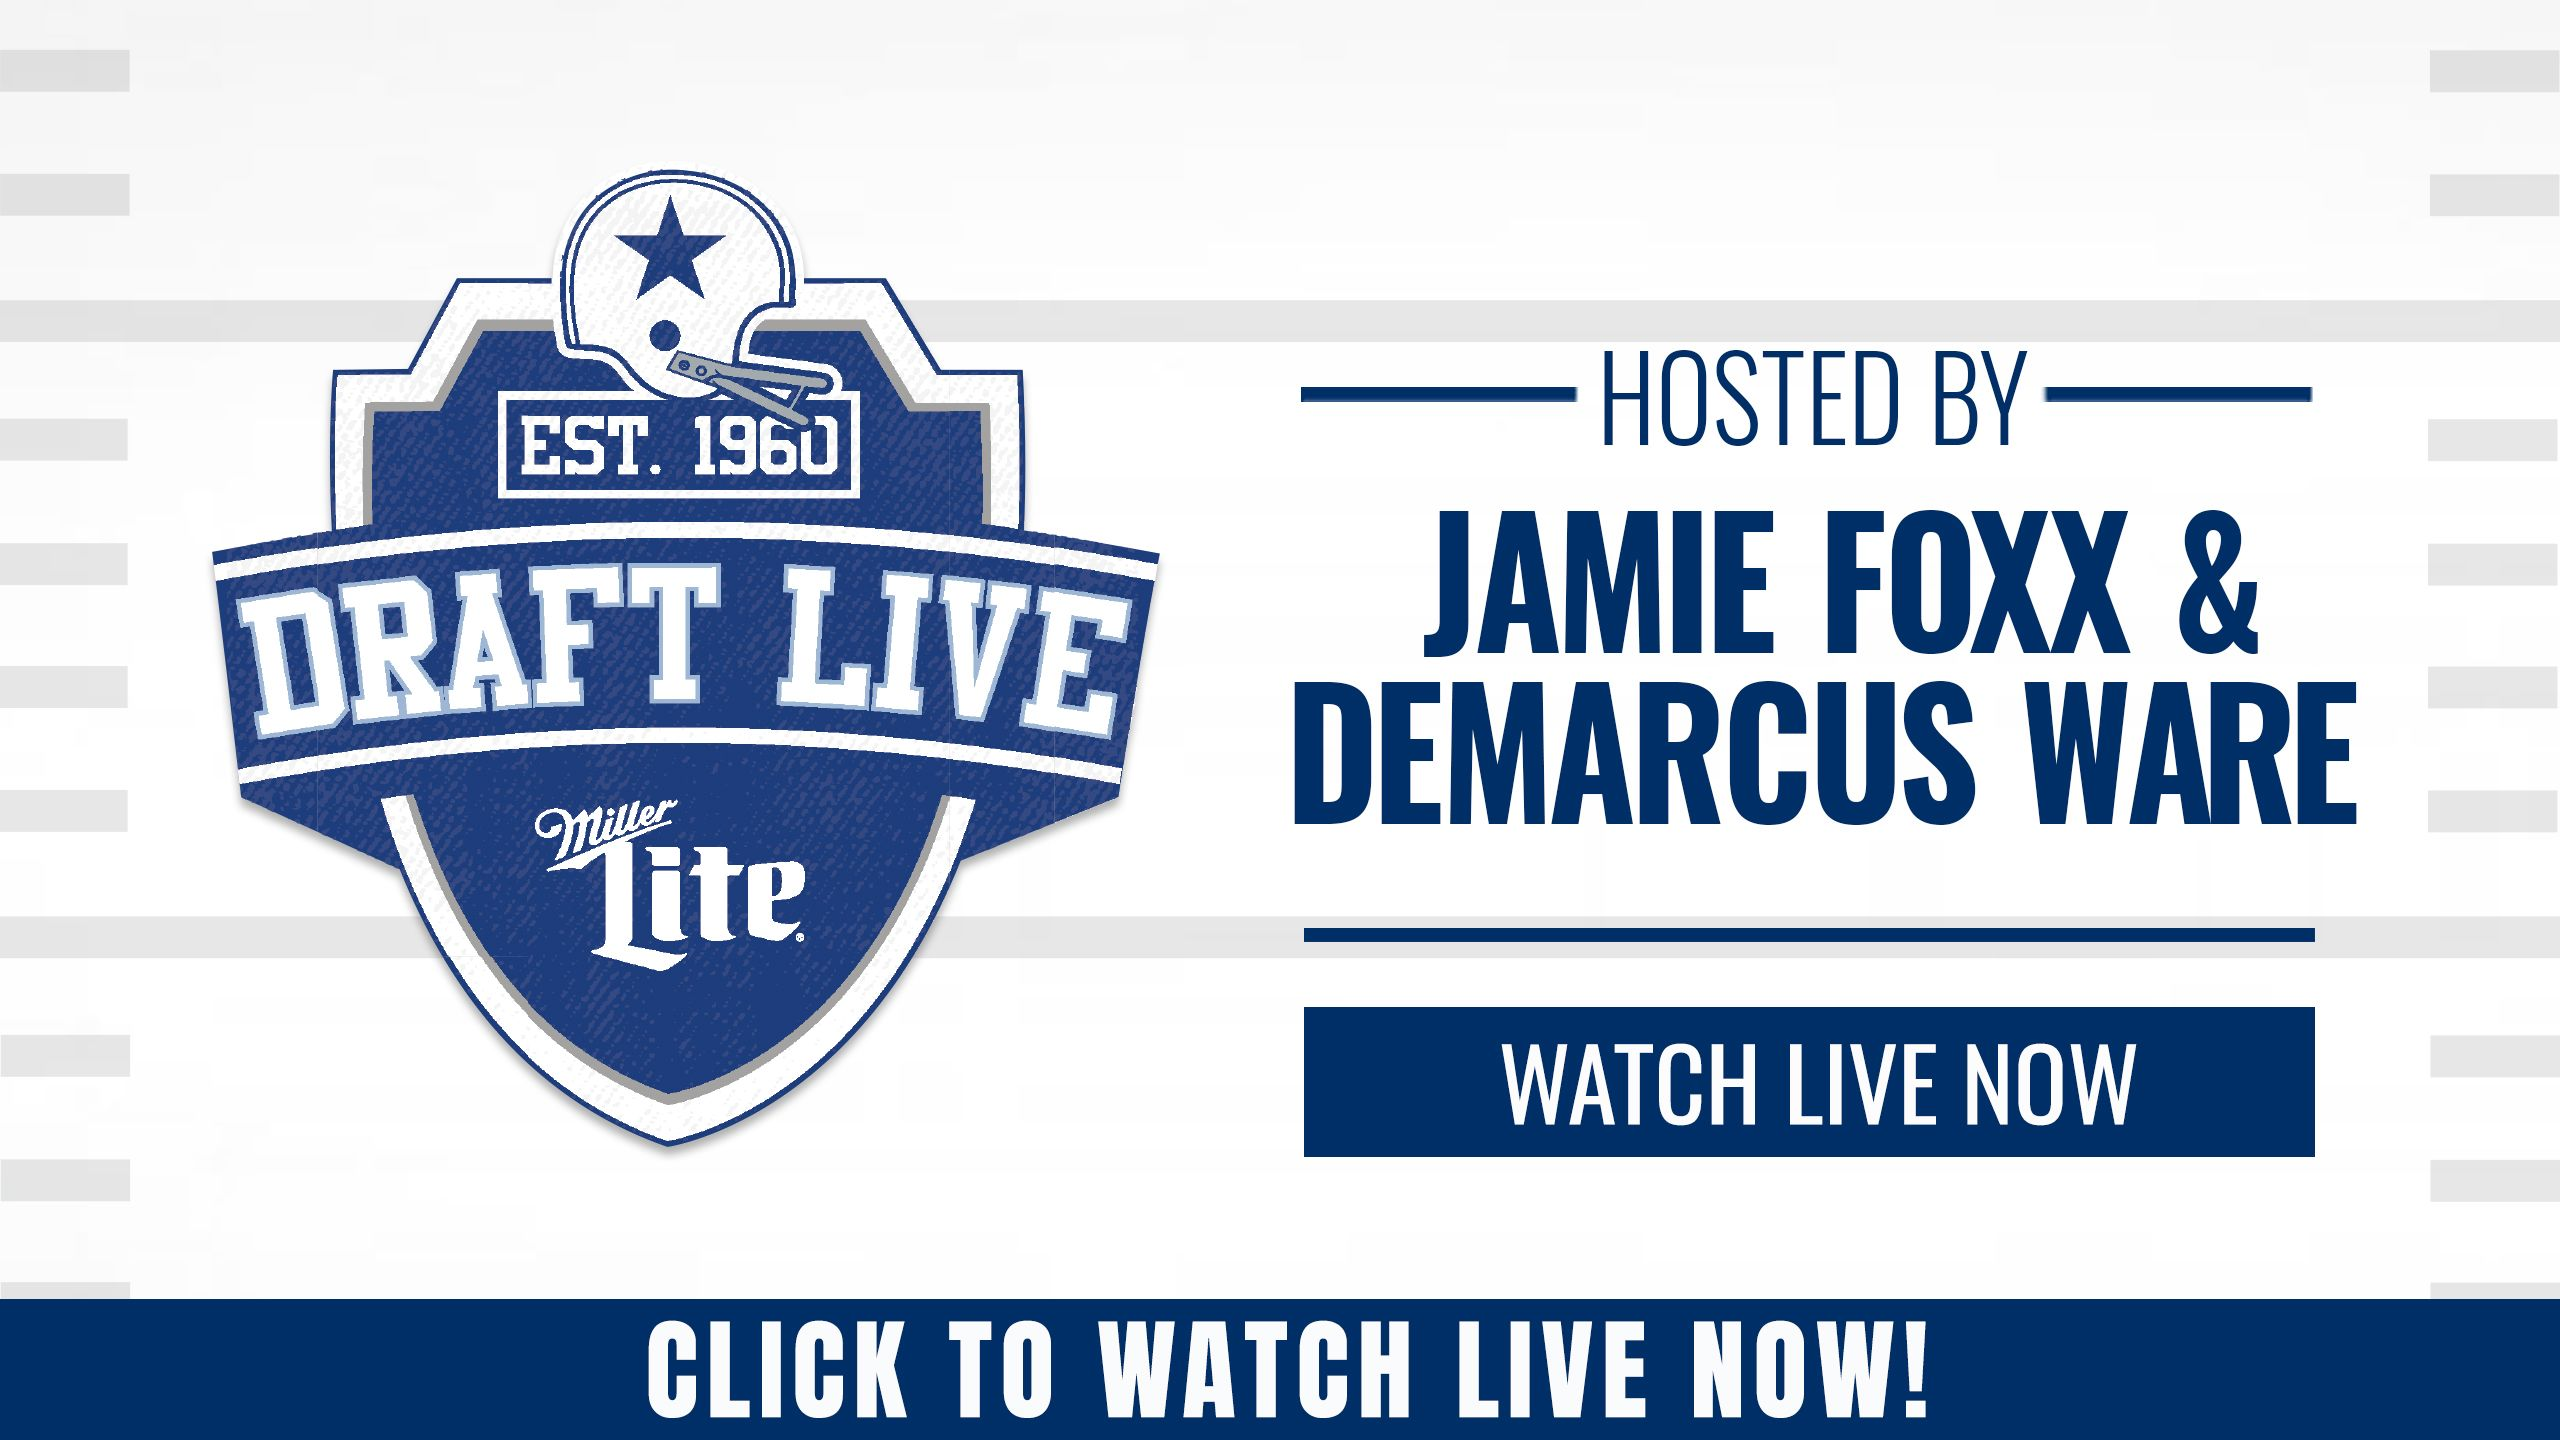 2020_DraftLive-WatchNow_2560x1440-HEADER